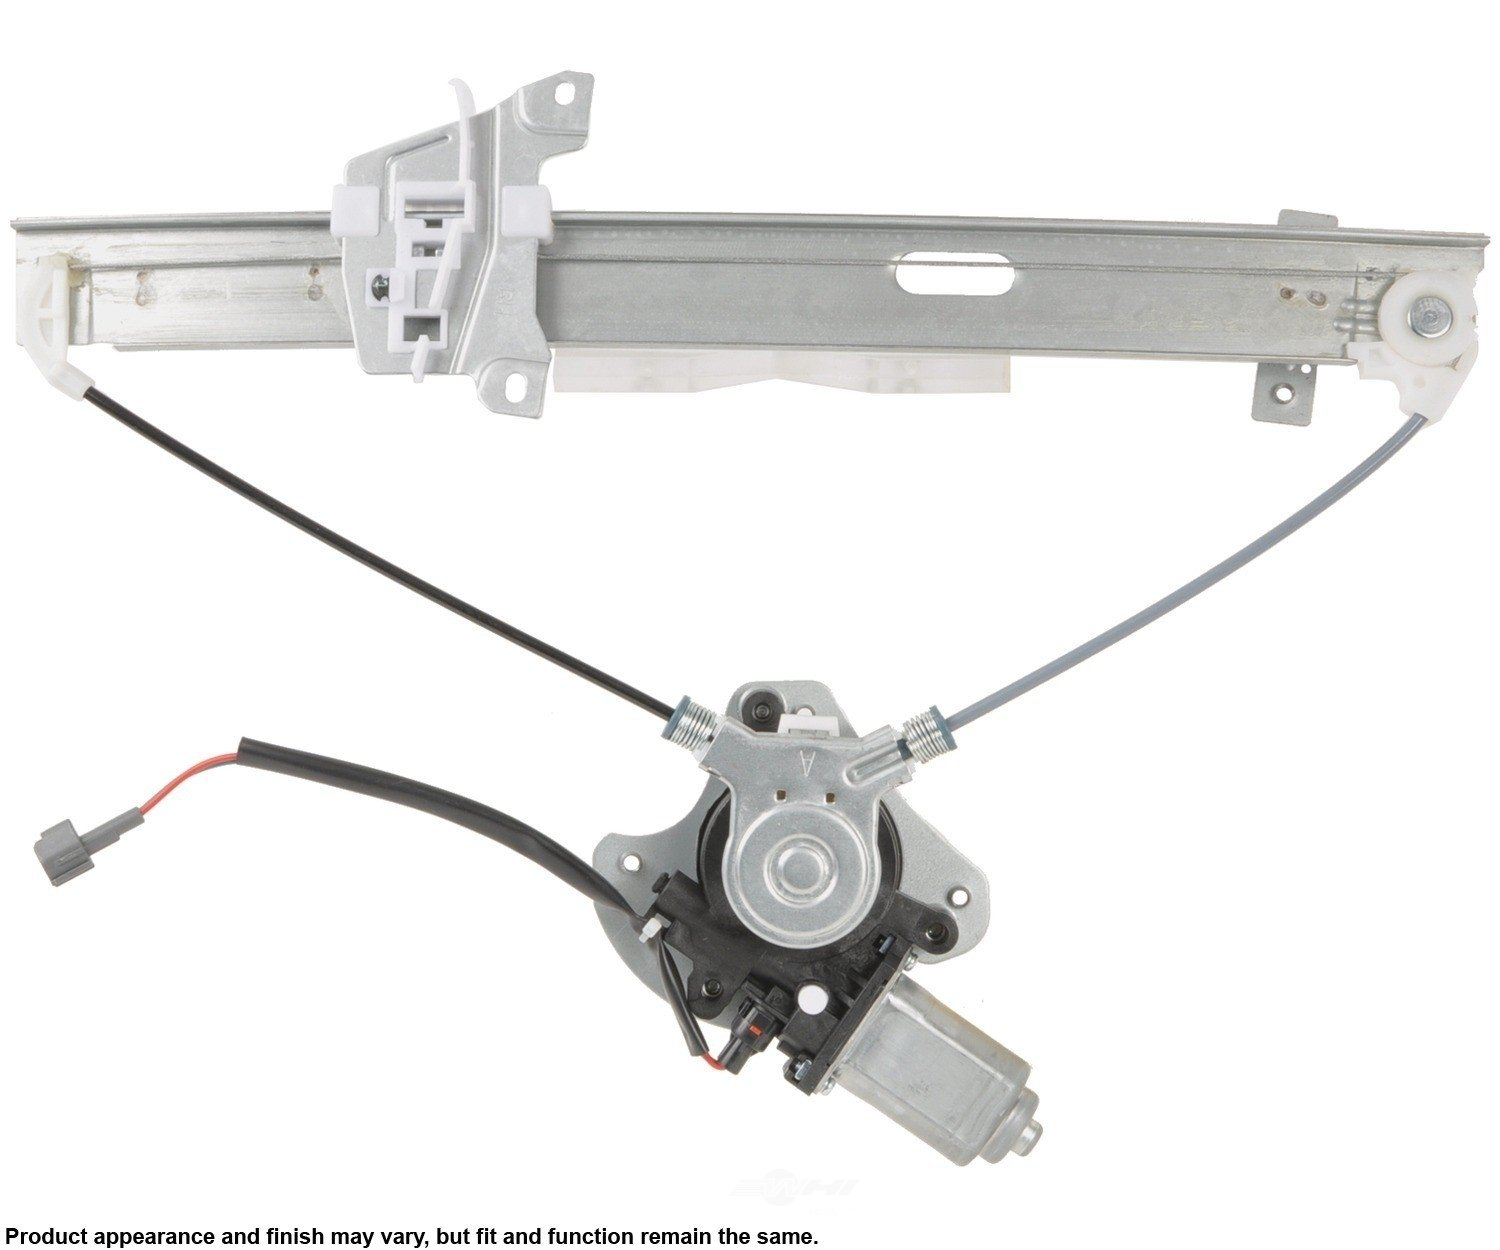 CARDONE NEW - Power Window Motor And Regulator Assembly (Rear Right) - A1S 82-1984AR